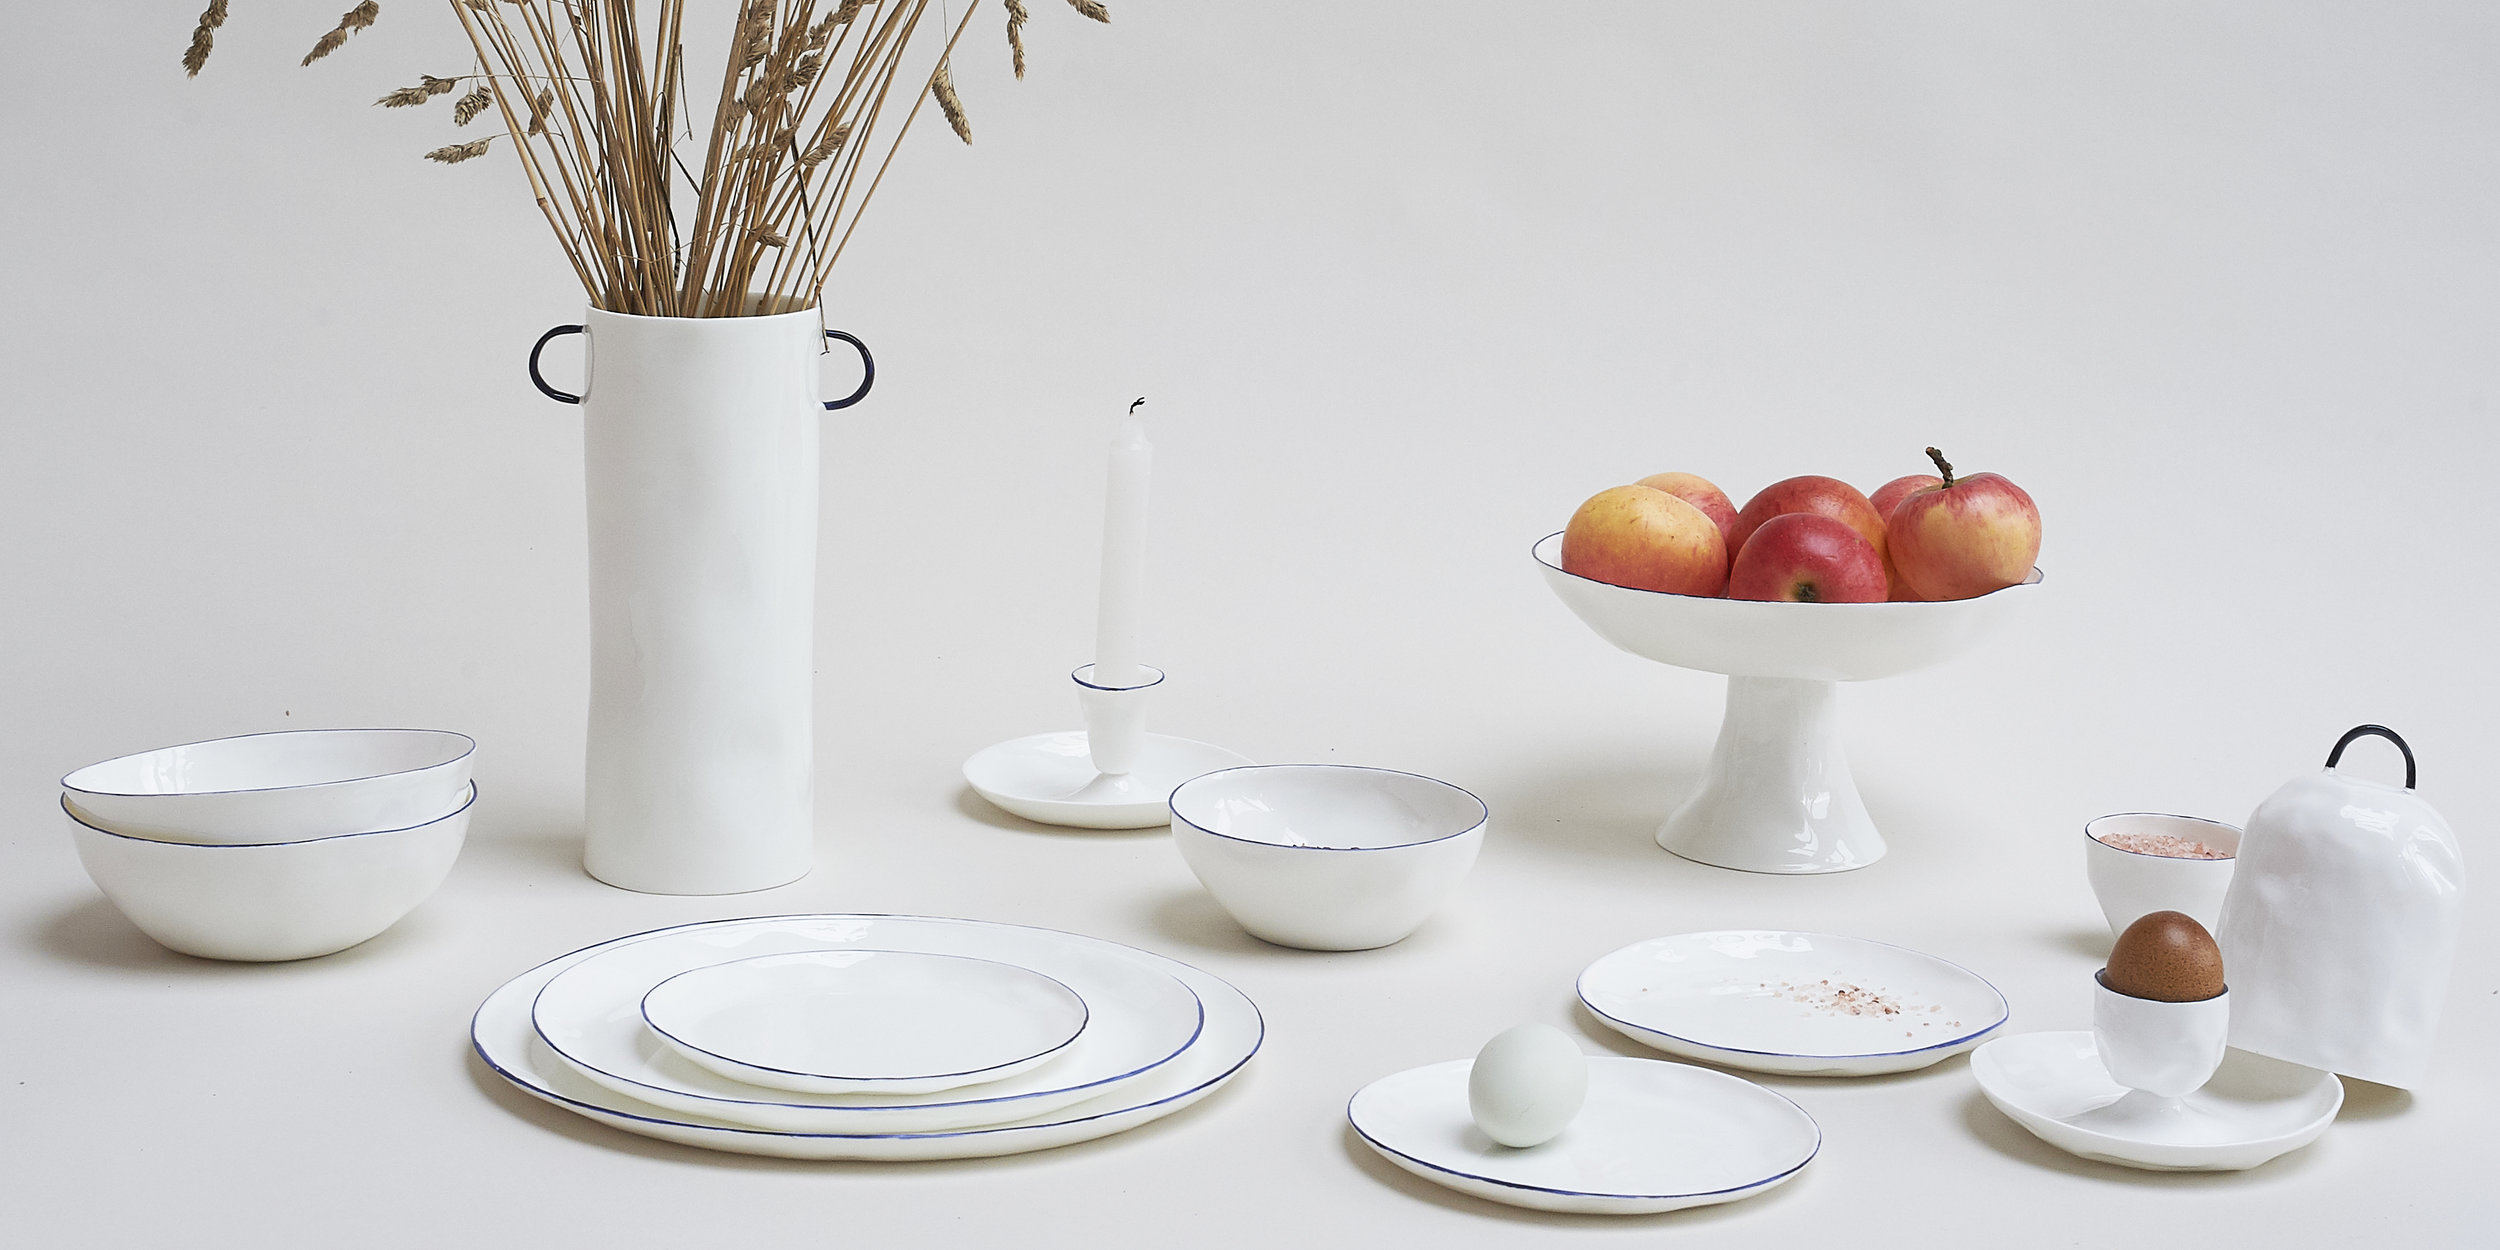 Cath and Jeremy's Feldspar fine bone china, tablewares collection